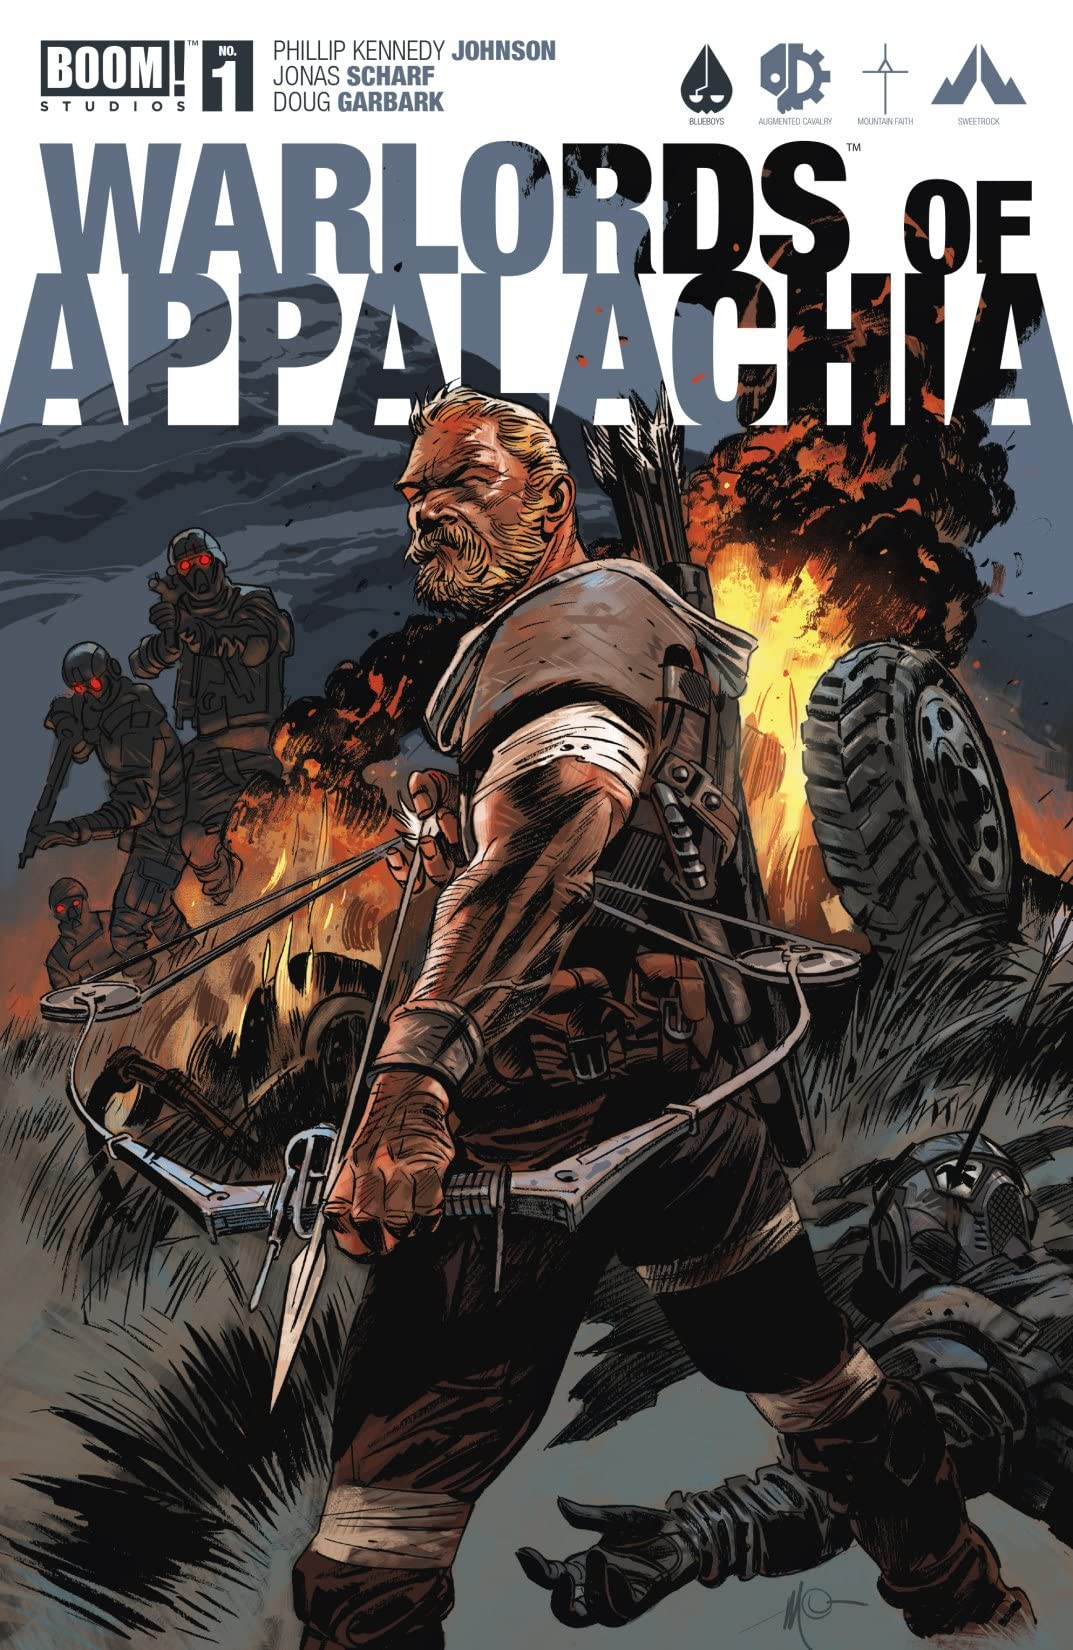 Warlords of Appalachia #1 (of 4)